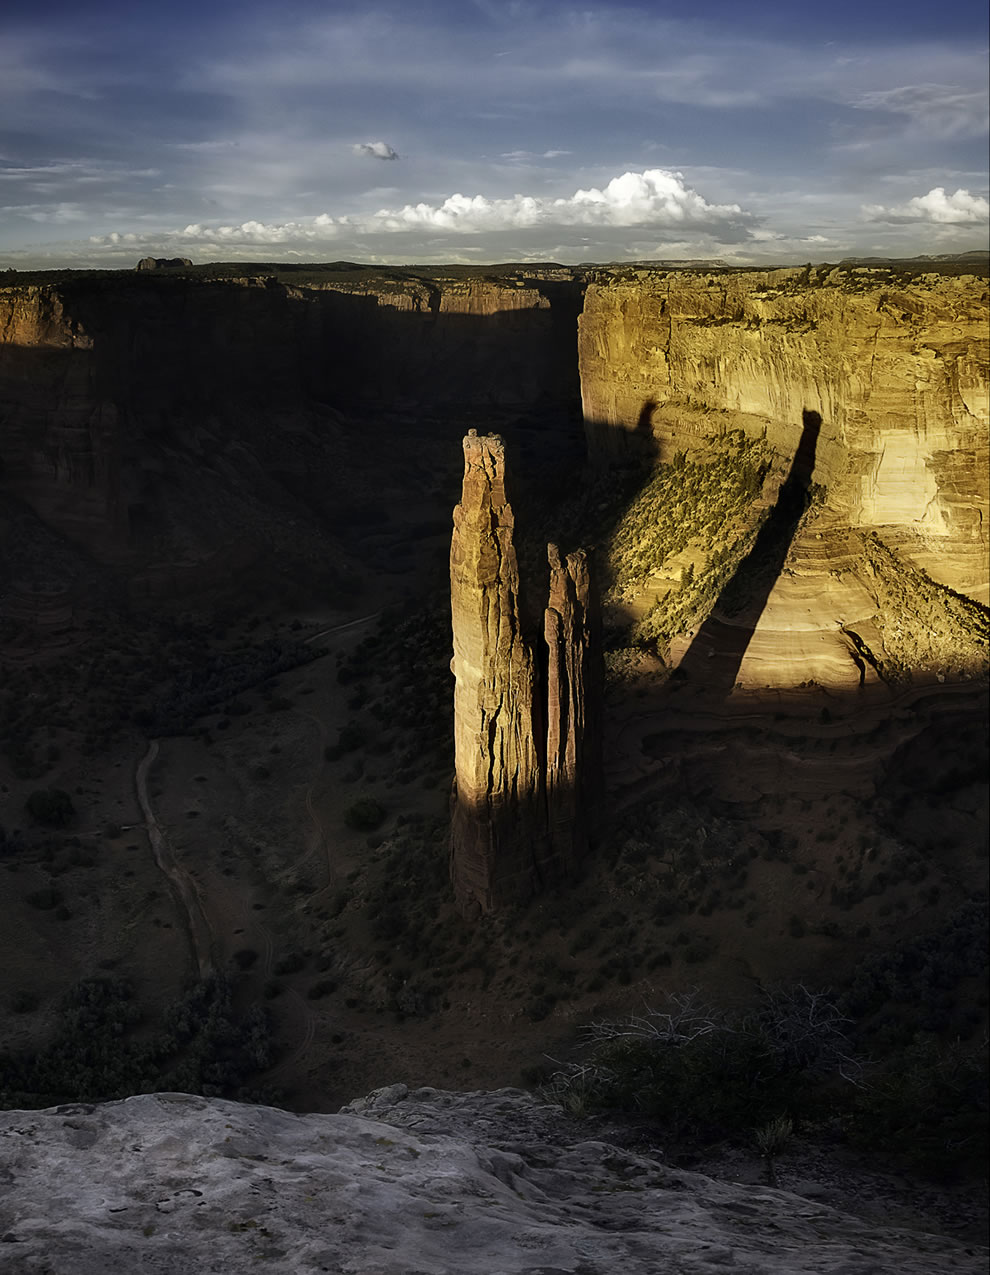 USA, Arizona, Canyon De Chelly, SpiderRock